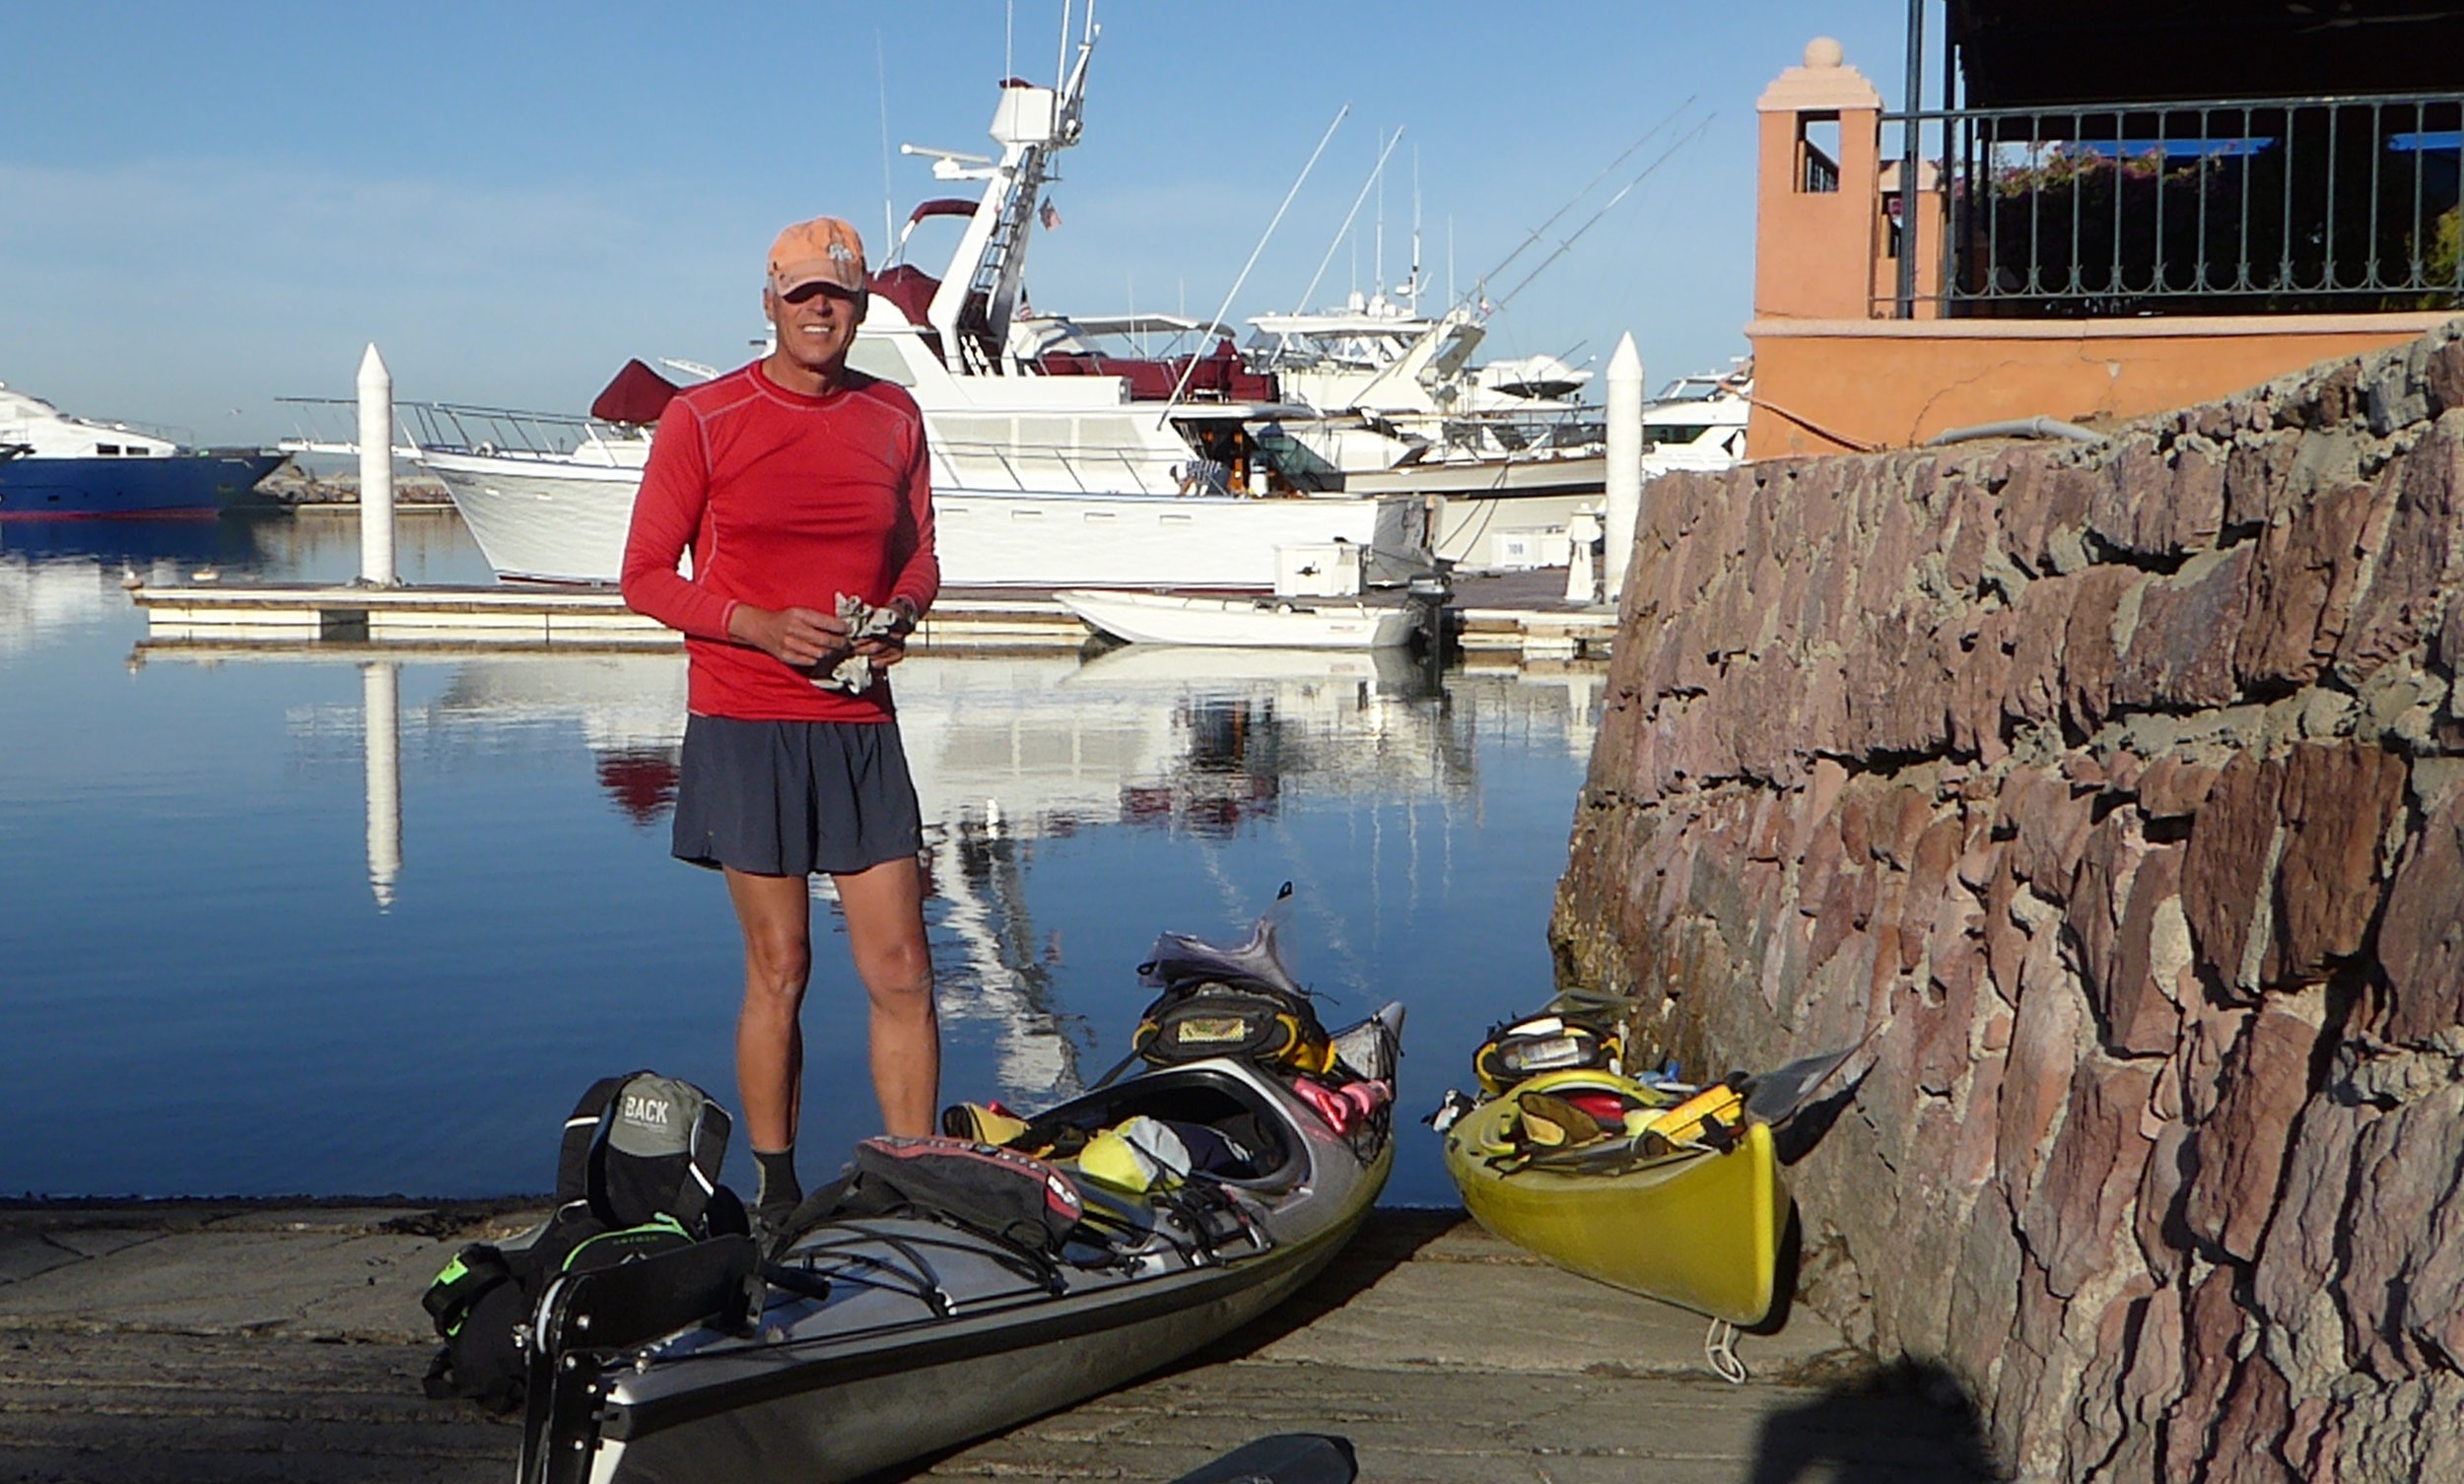 Don finishes getting all the gear in his boat. Back to having heavy boats loaded with food and water.